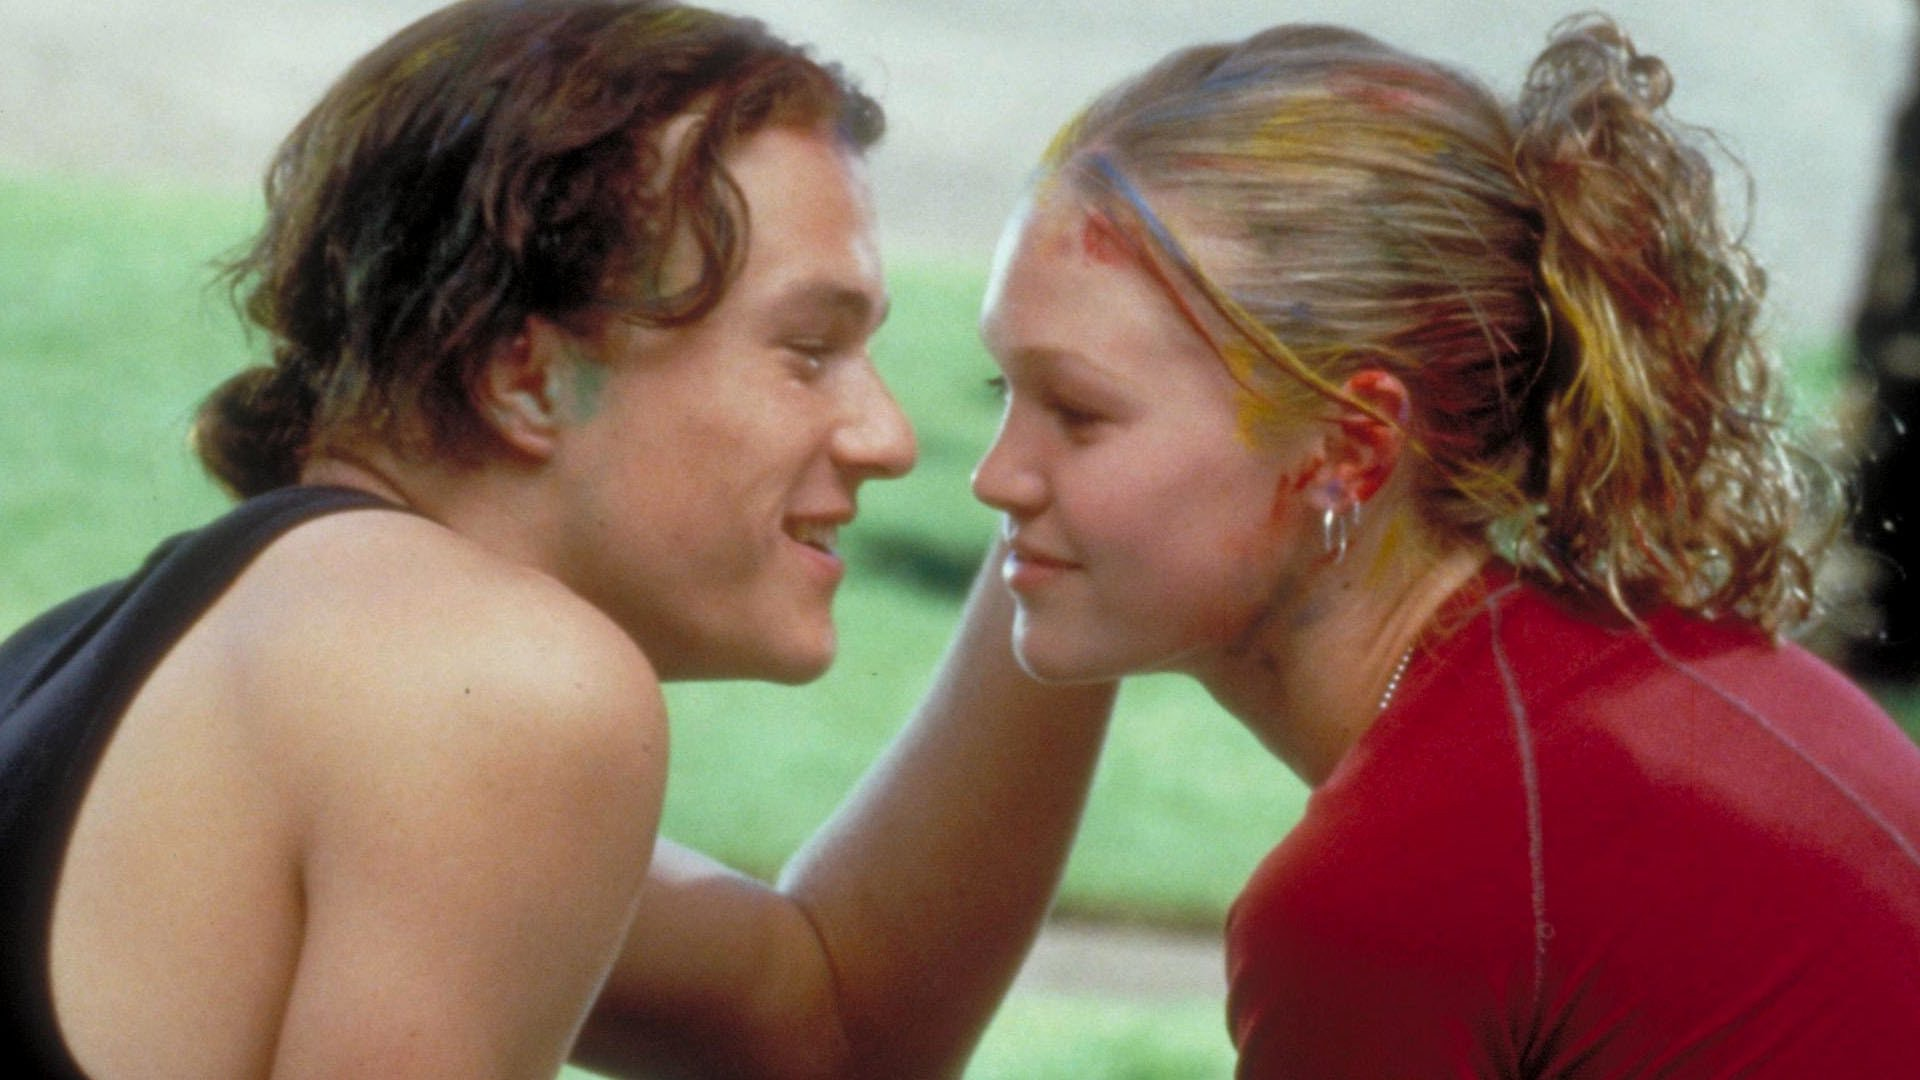 10 Things I Hate About You Soundtrack